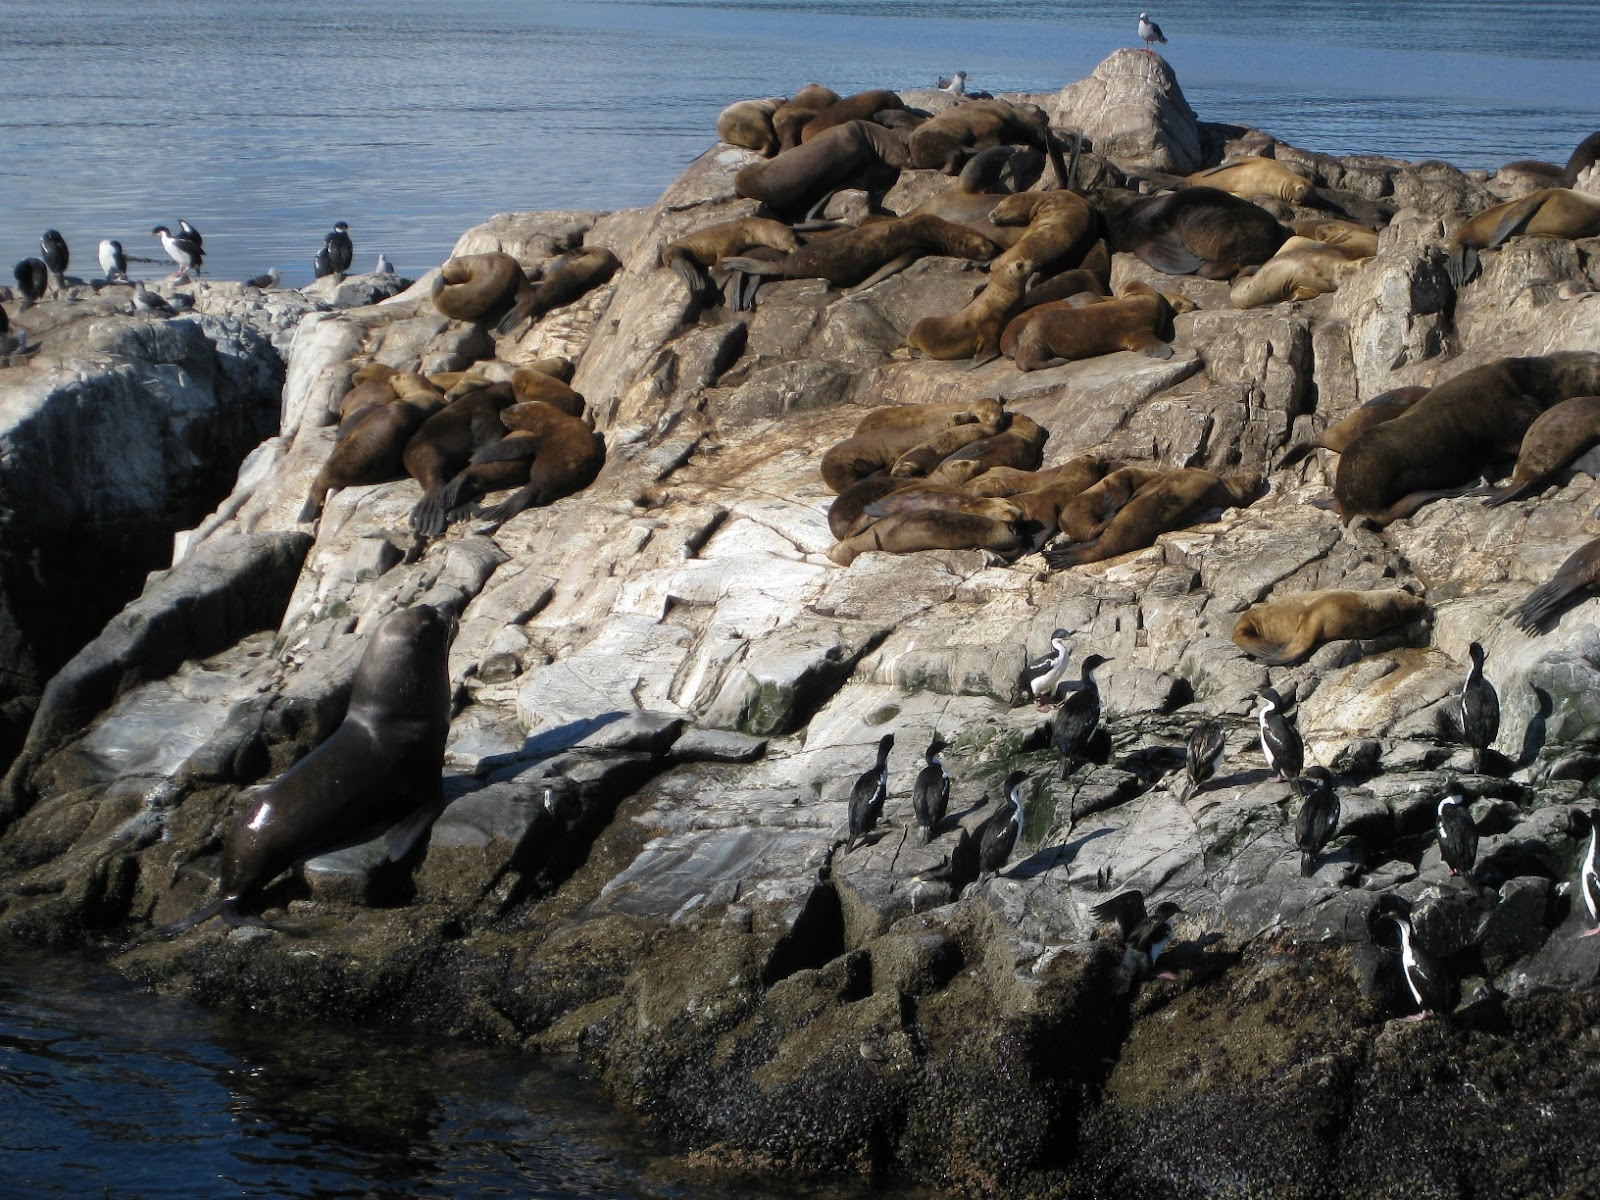 The birds and the sealions seem to tolerate each other